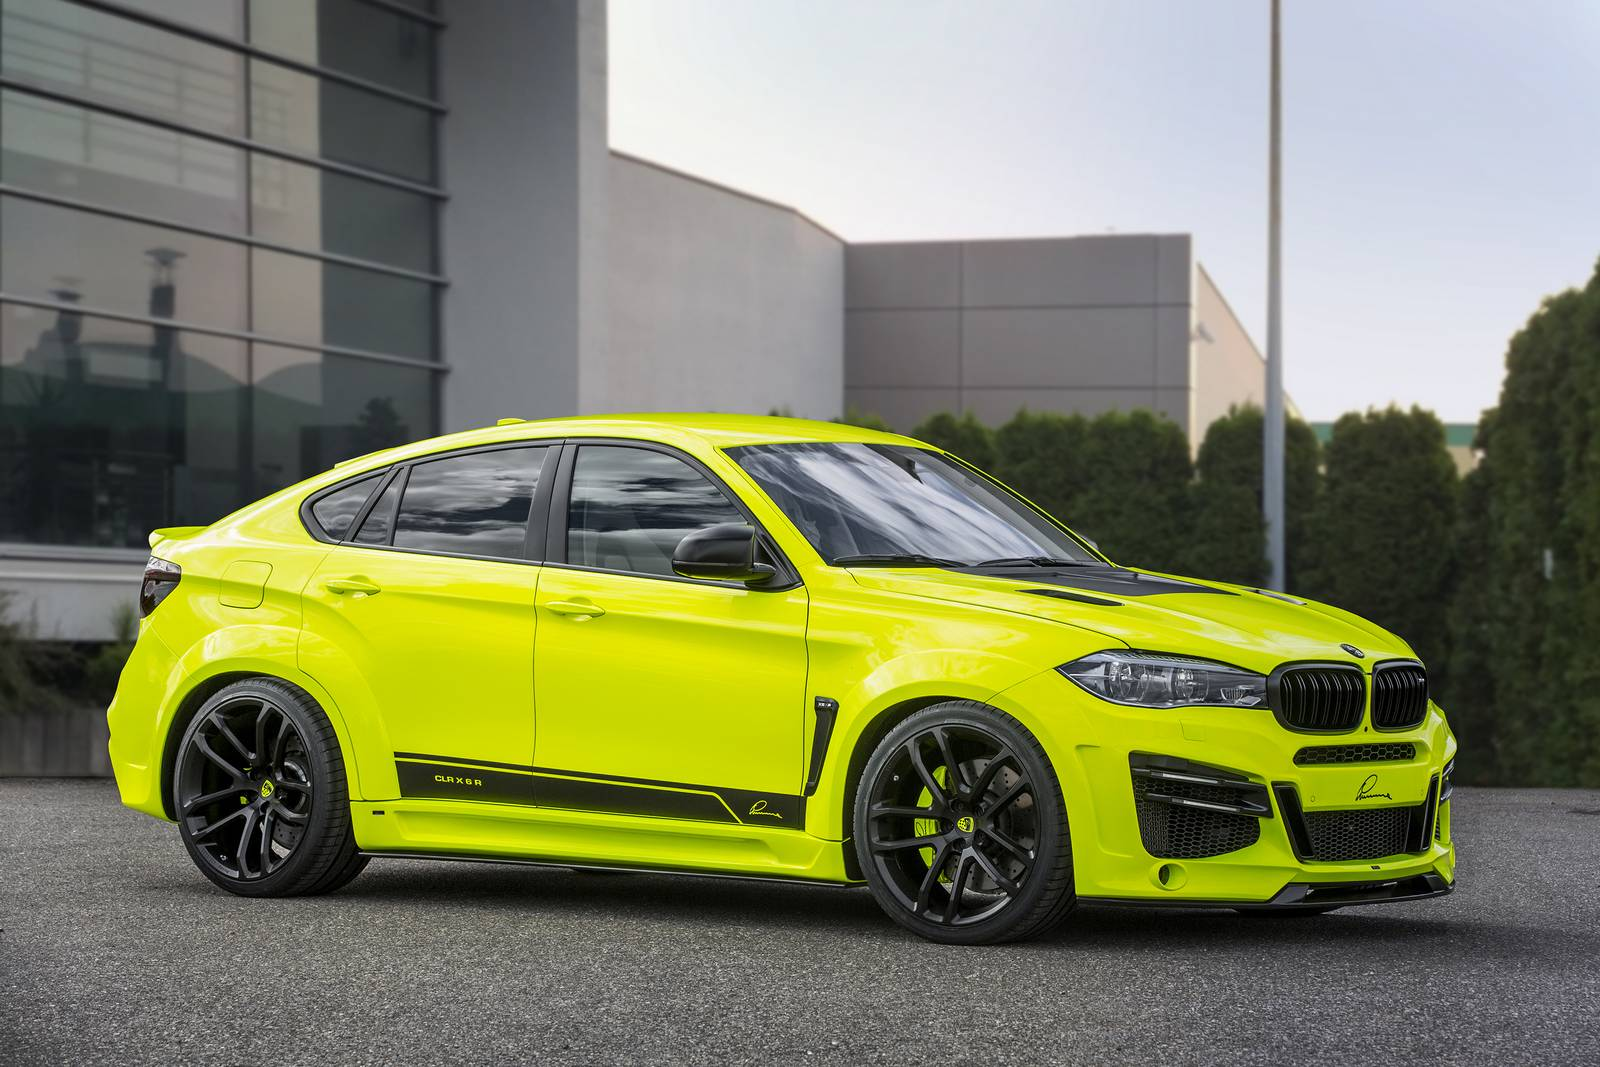 official 750hp lumma design bmw x6 m widebody gtspirit. Black Bedroom Furniture Sets. Home Design Ideas